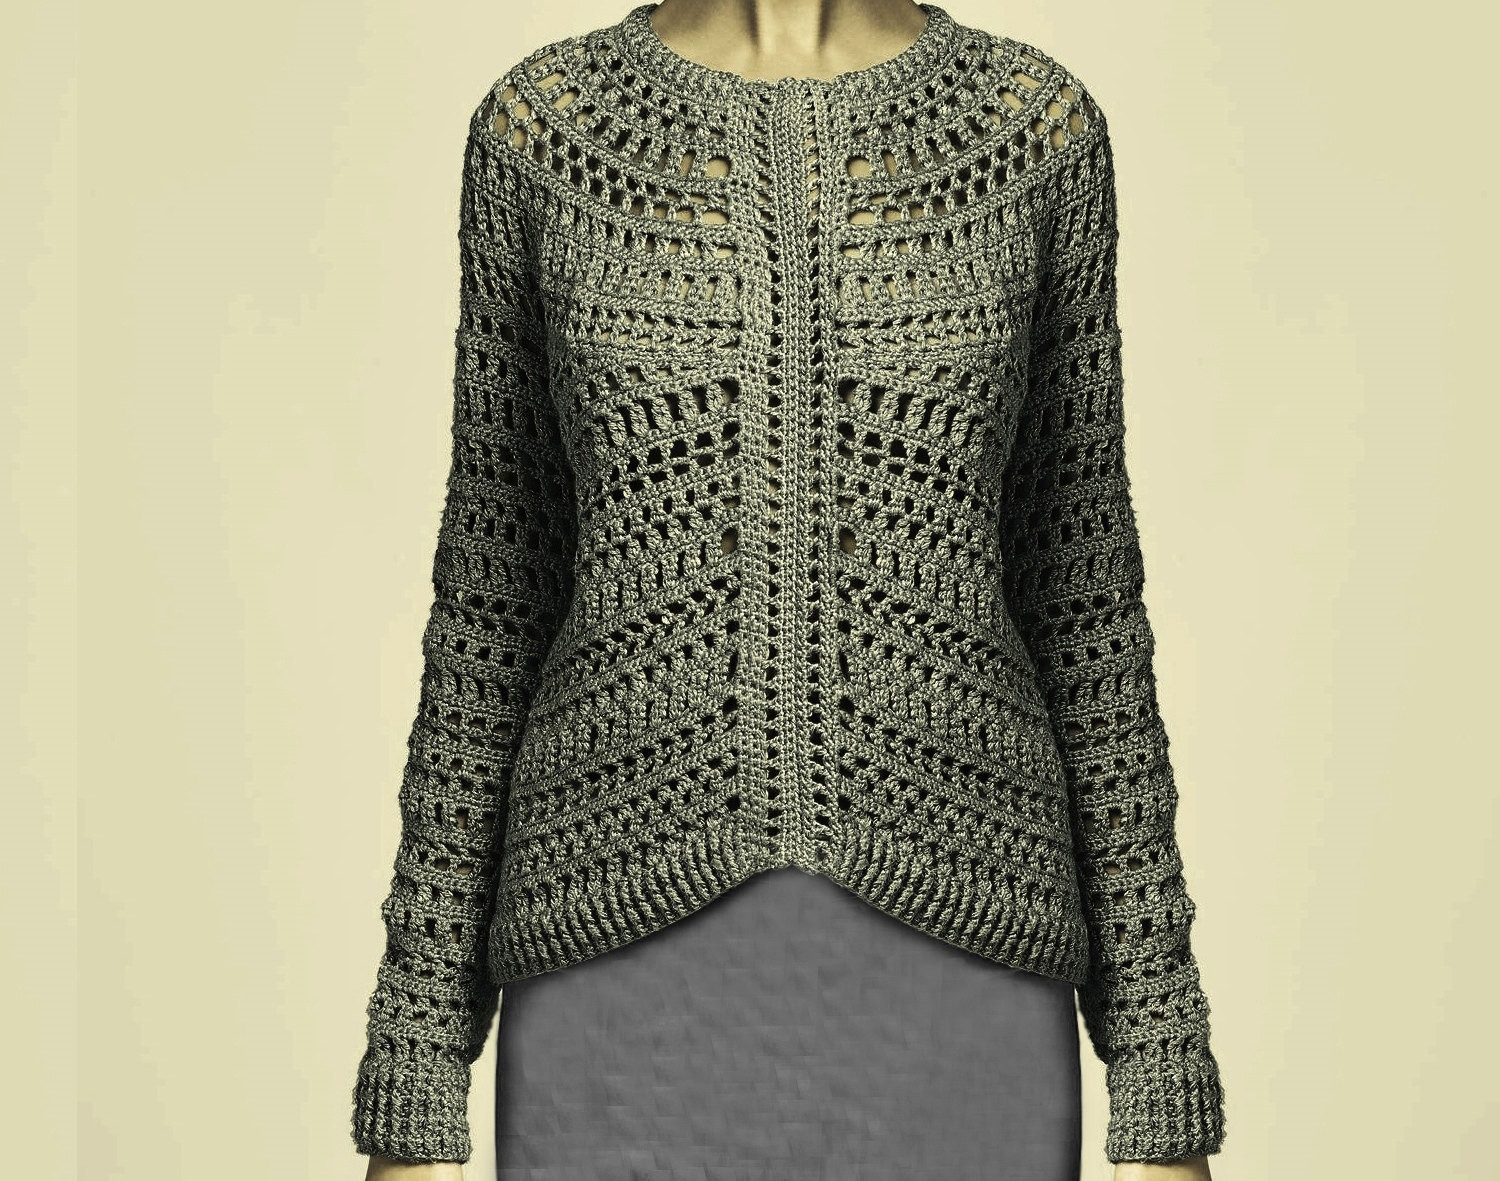 Crochet Sweater Pattern Free Luxury Crochet Designs for Sweaters Of Unique 50 Images Crochet Sweater Pattern Free